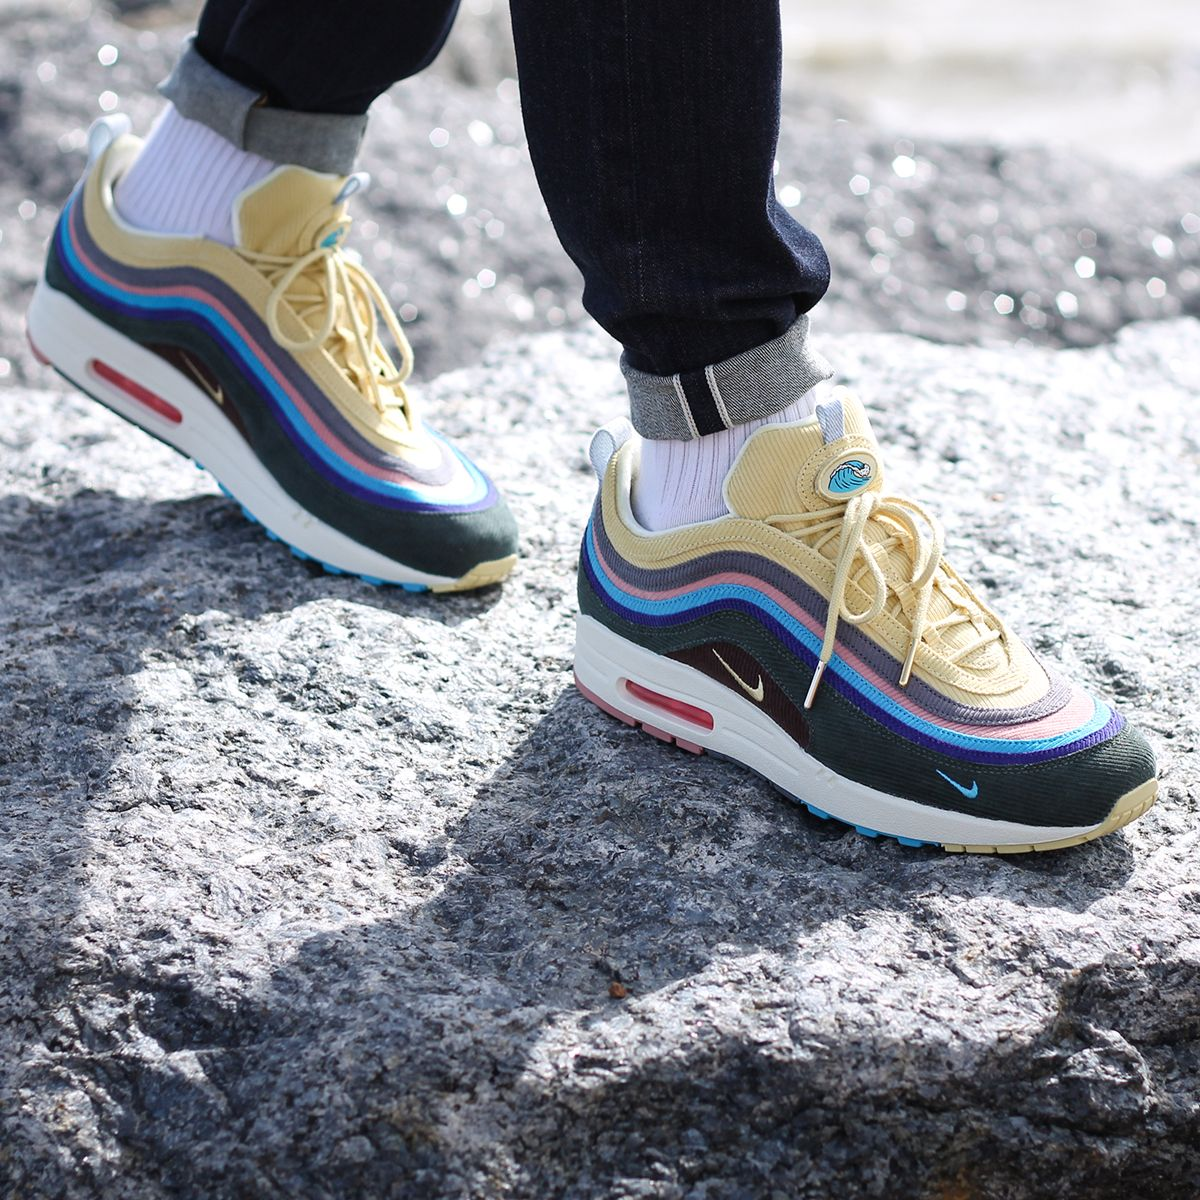 5e00d6ff30 The Nike Air Max 1/97 Sean Wotherspoon Sneakers at Urban Industry, UK